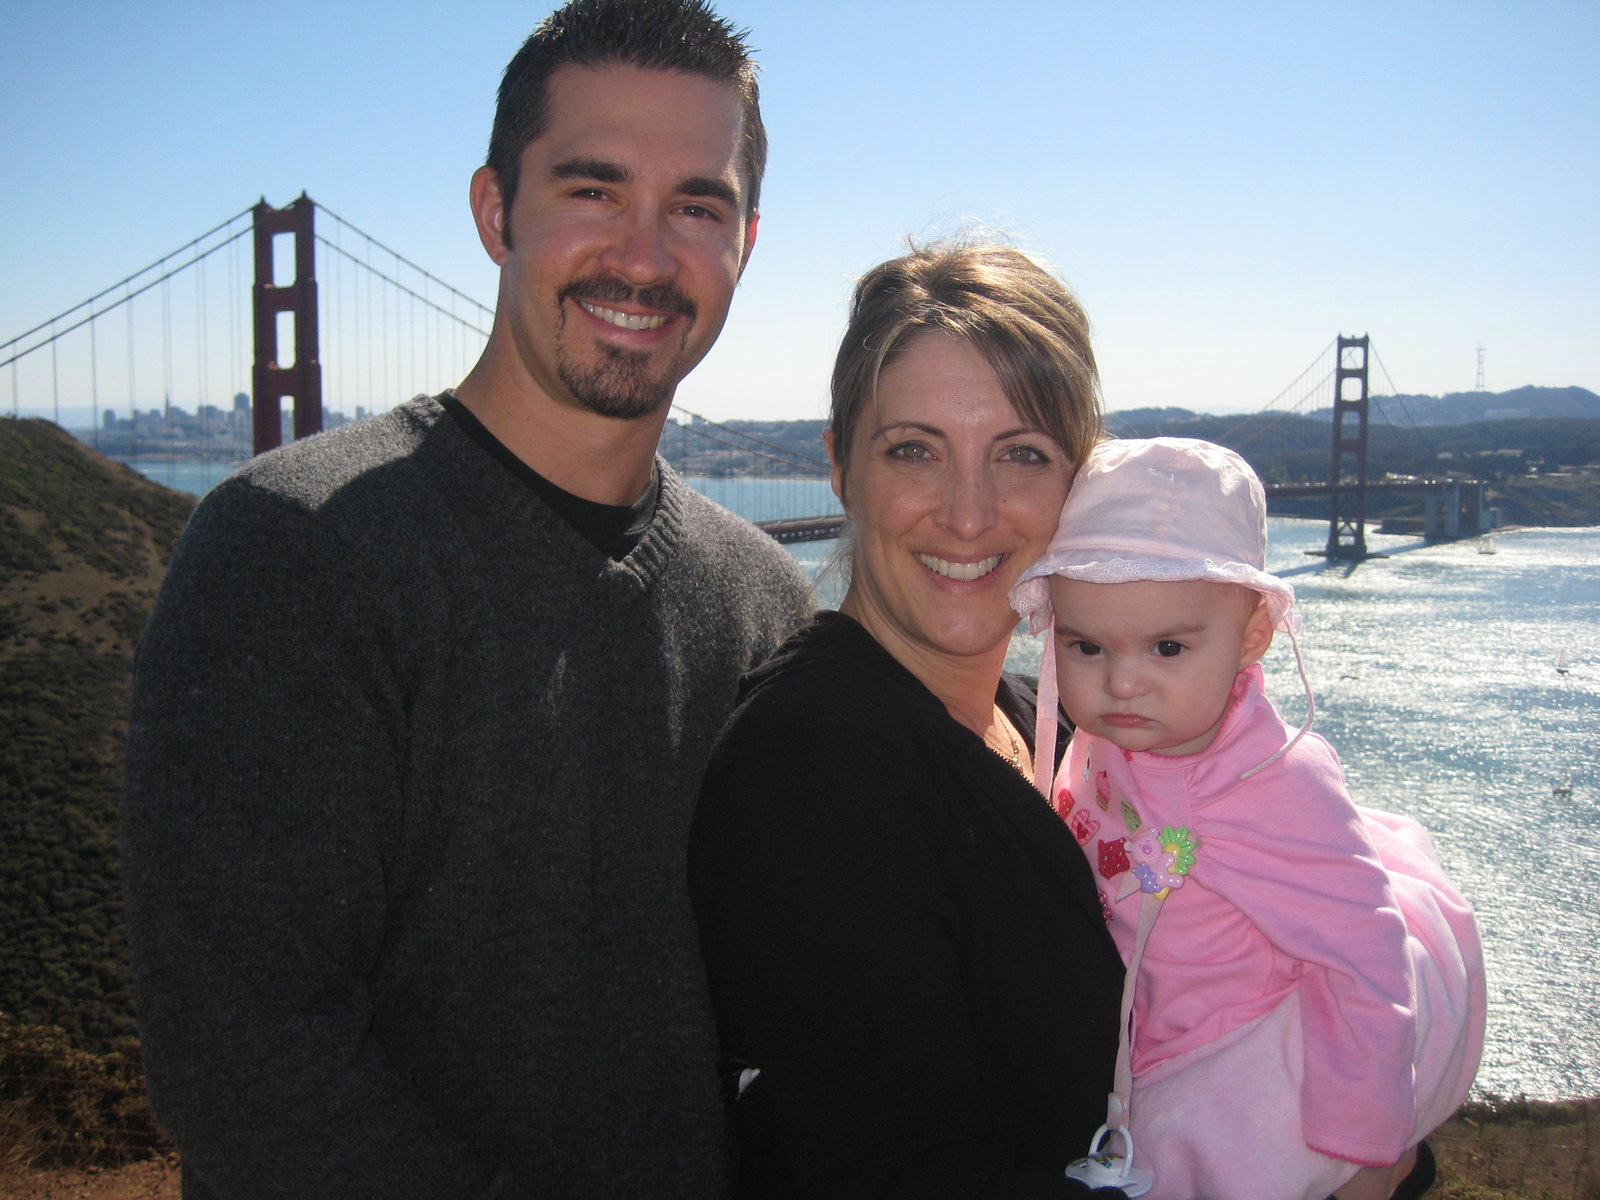 Our S.F. Visit